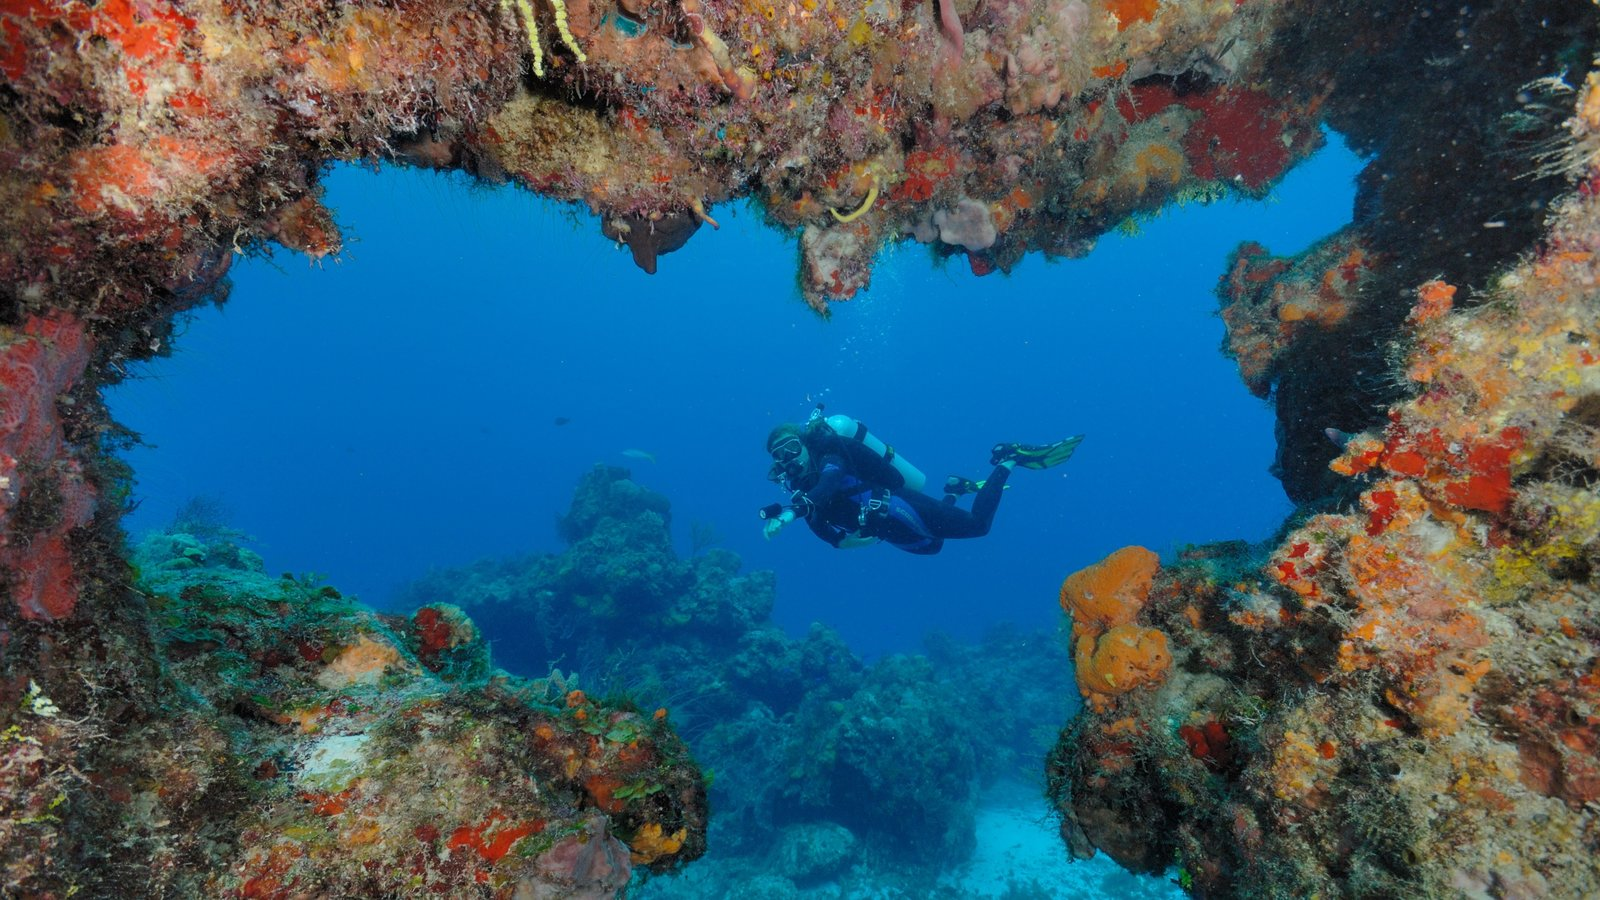 Cozumel featuring scuba diving and coral as well as an individual male